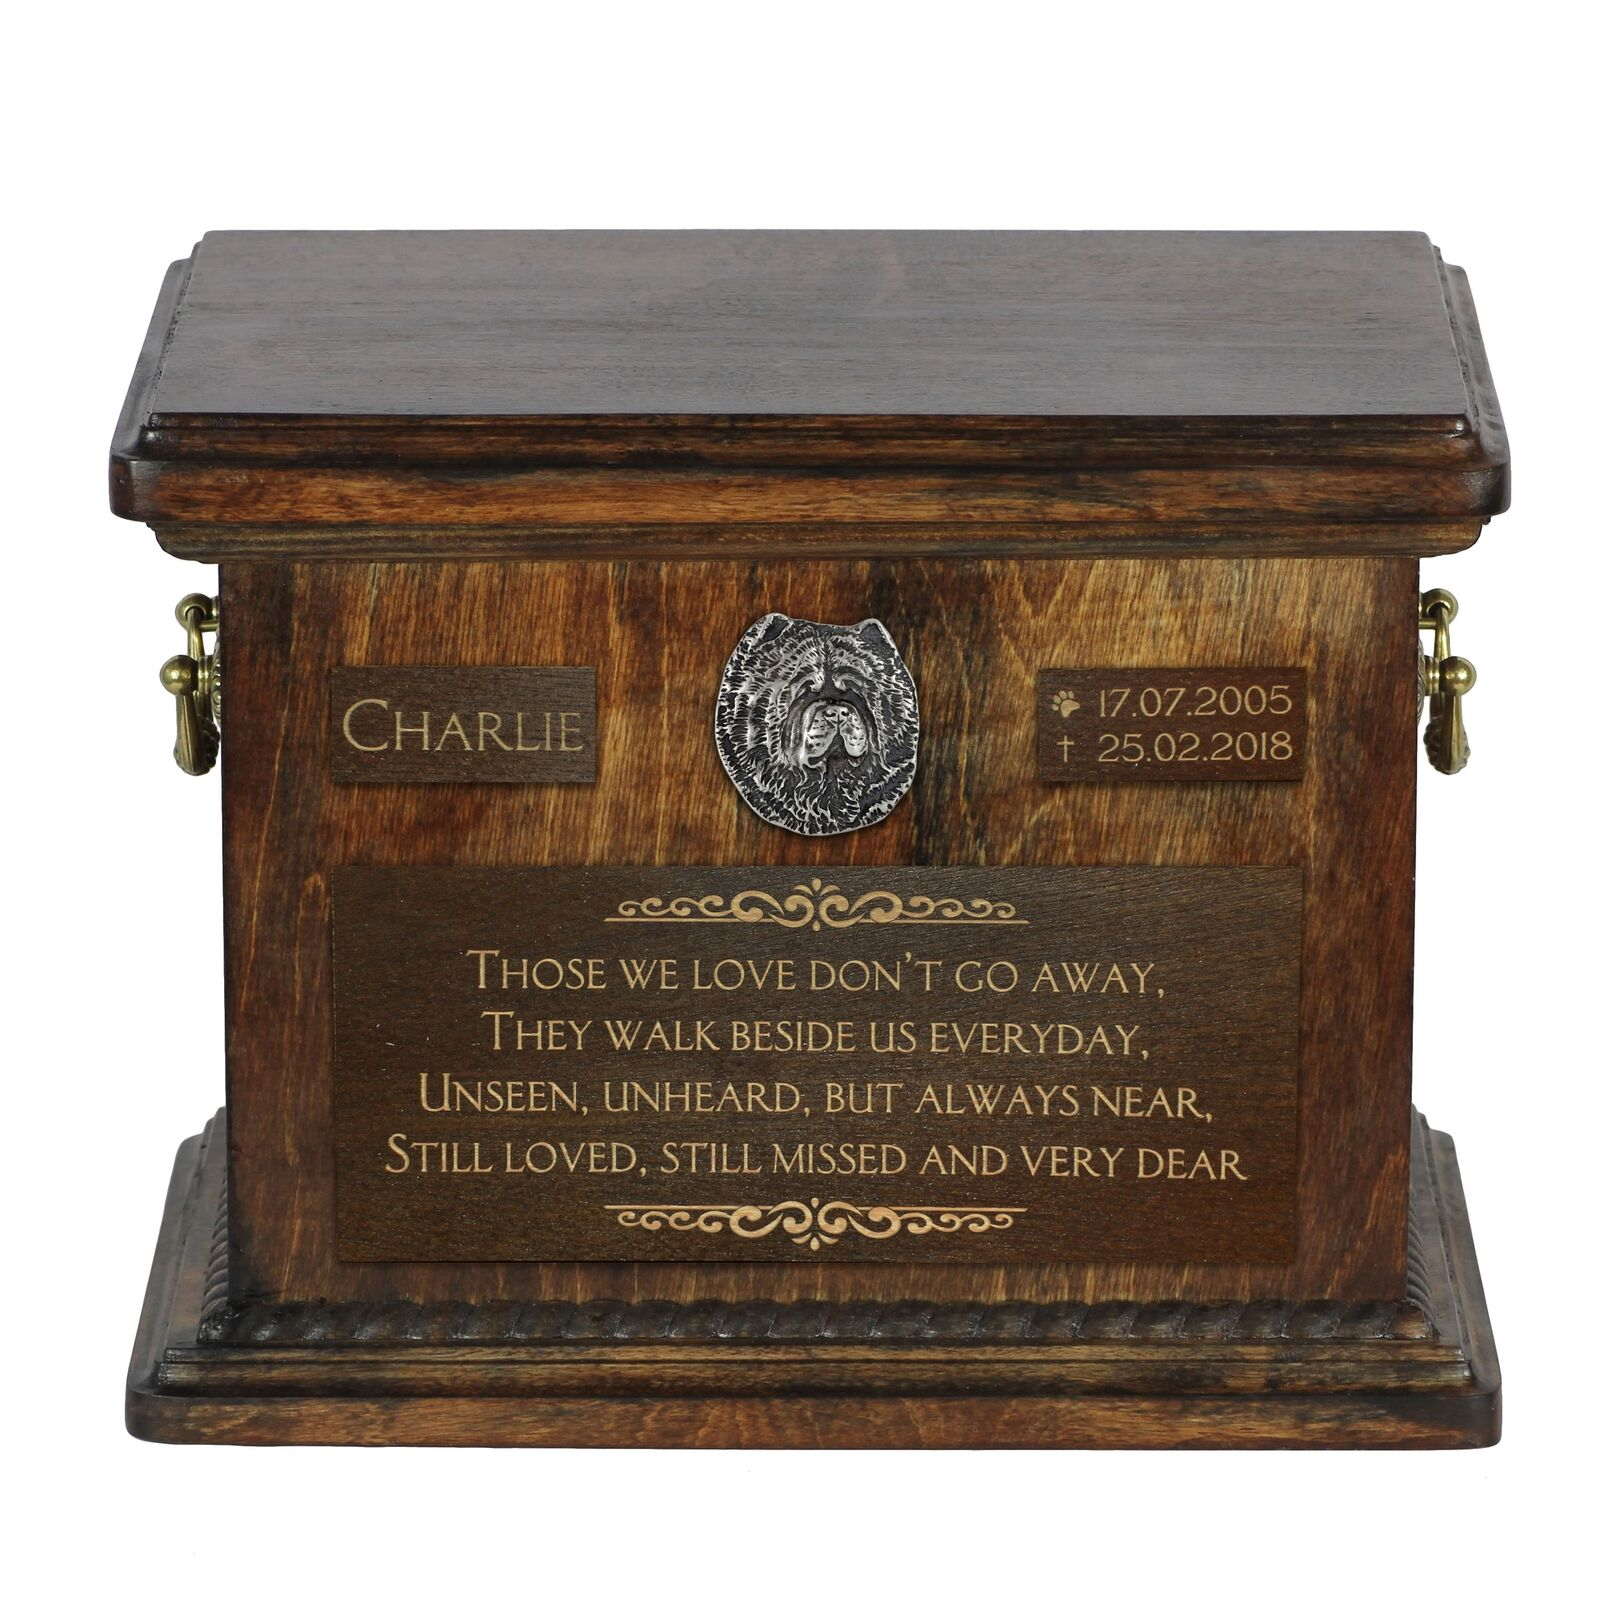 Chow chow - Urn for dog's ashes with image of a dog, Art Dog